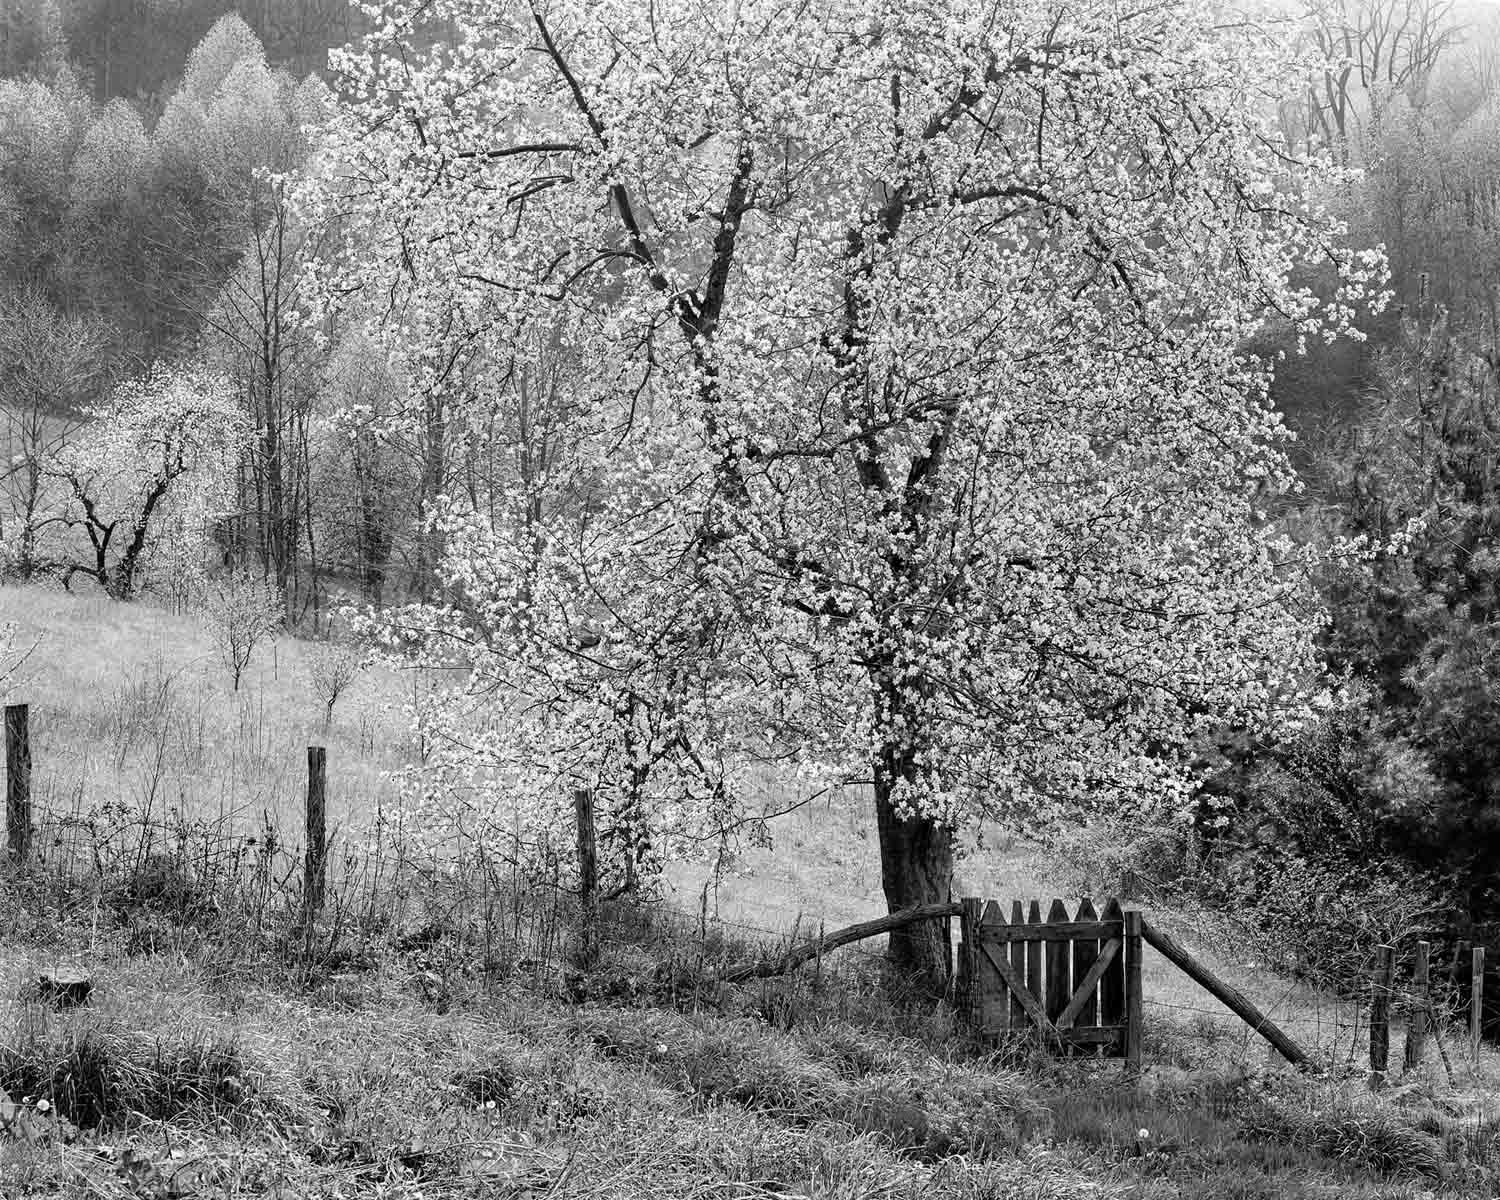 Apple Trees in bloom, Willow Creek, 1983 (page 35 in book)